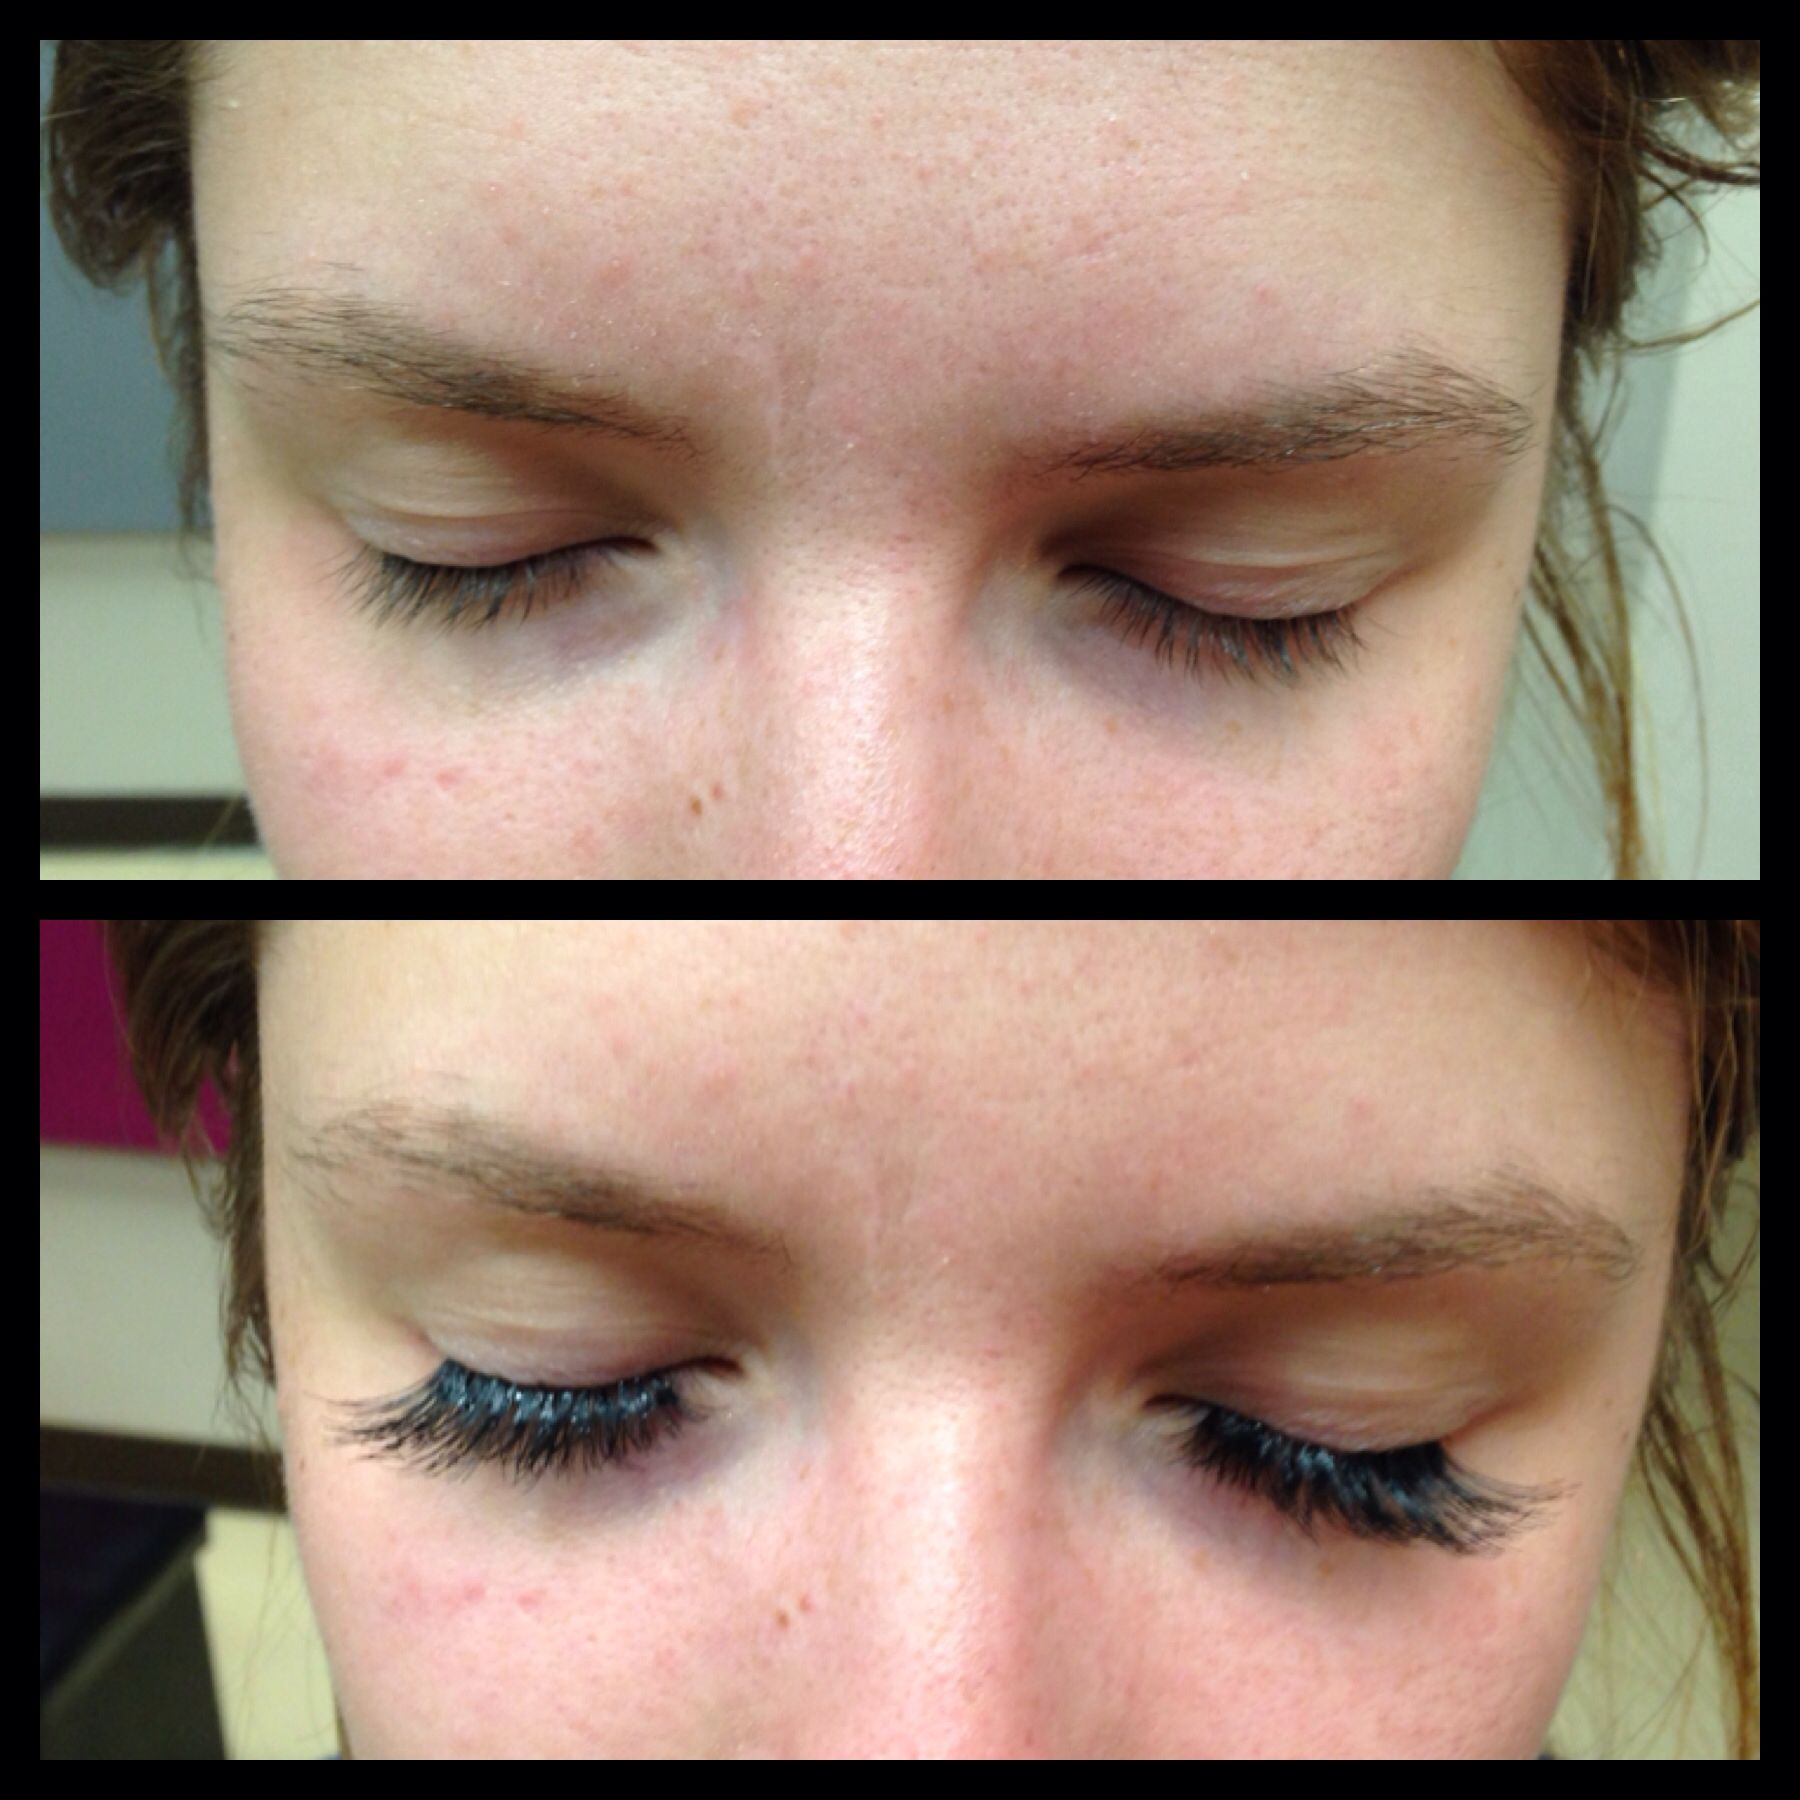 For all who are asking about the Lash Tabbing: It lasts UP TO two weeks, applied on clean lashes, in individual clusters of 3-5 lashes. More custom and natural than strip lashes, no mascara needed. 30 min appointment for $30. For booking call (410)677-4675 Amber Heater, Gorgeous Salon, Salisbury MD